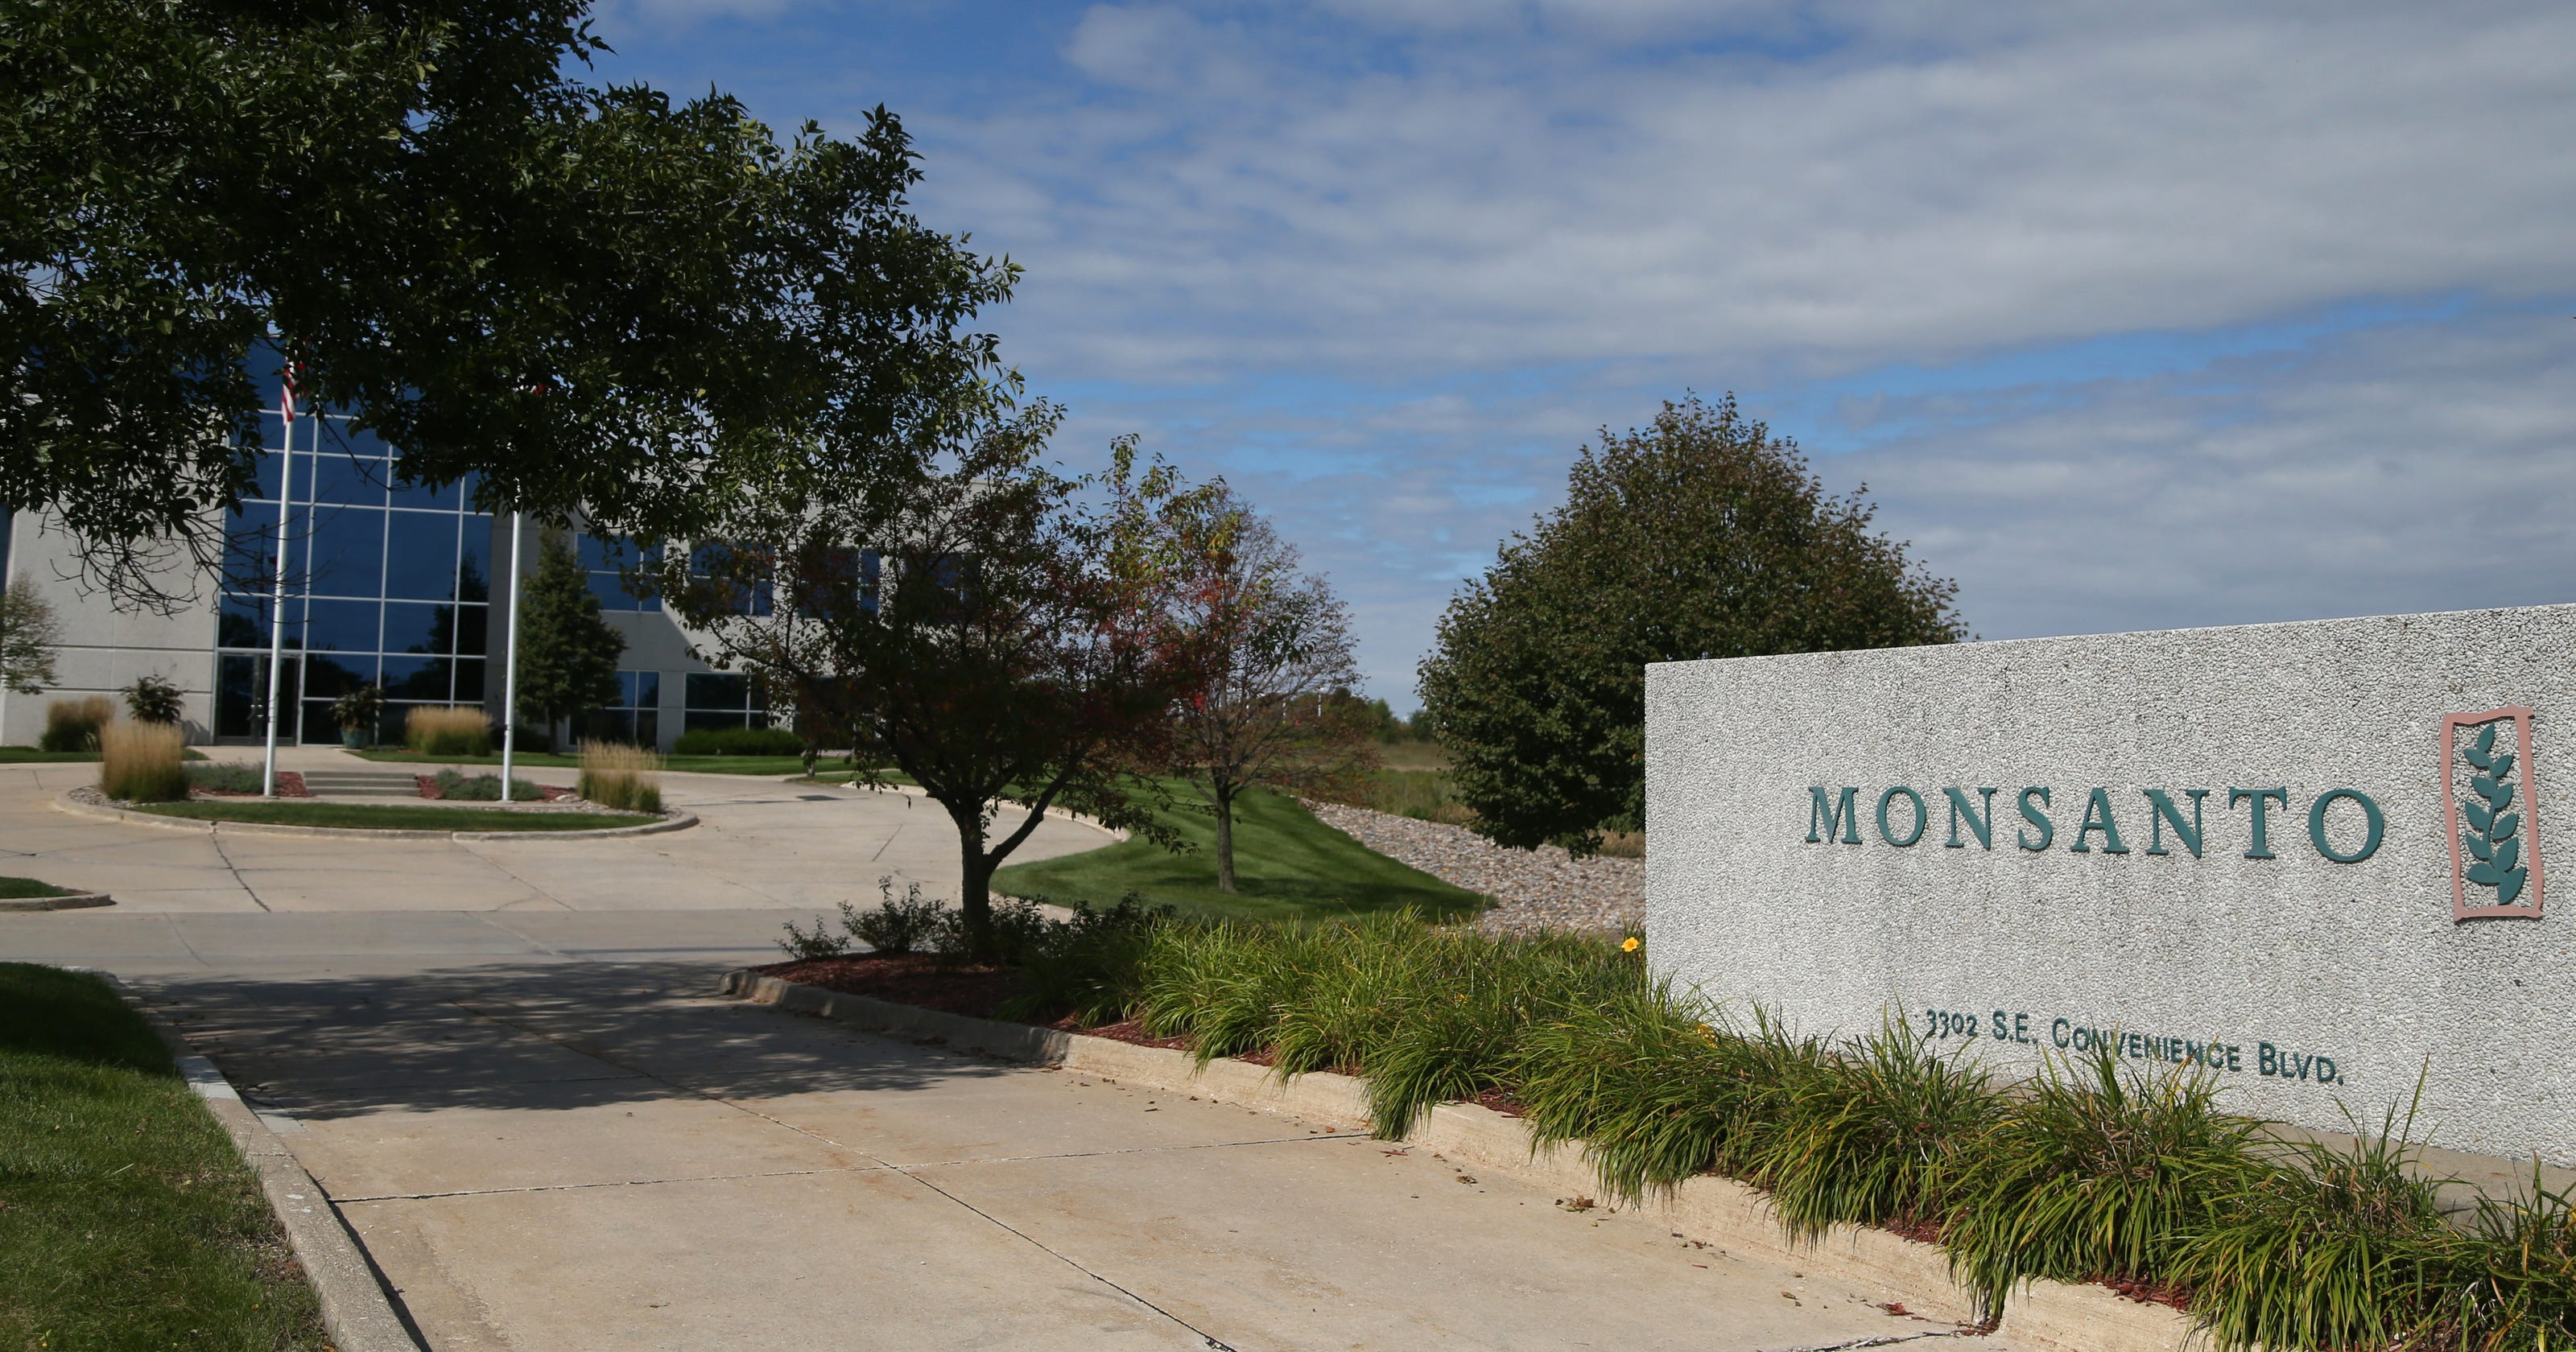 Monsanto-Bayer merger hurts farmers and consumers